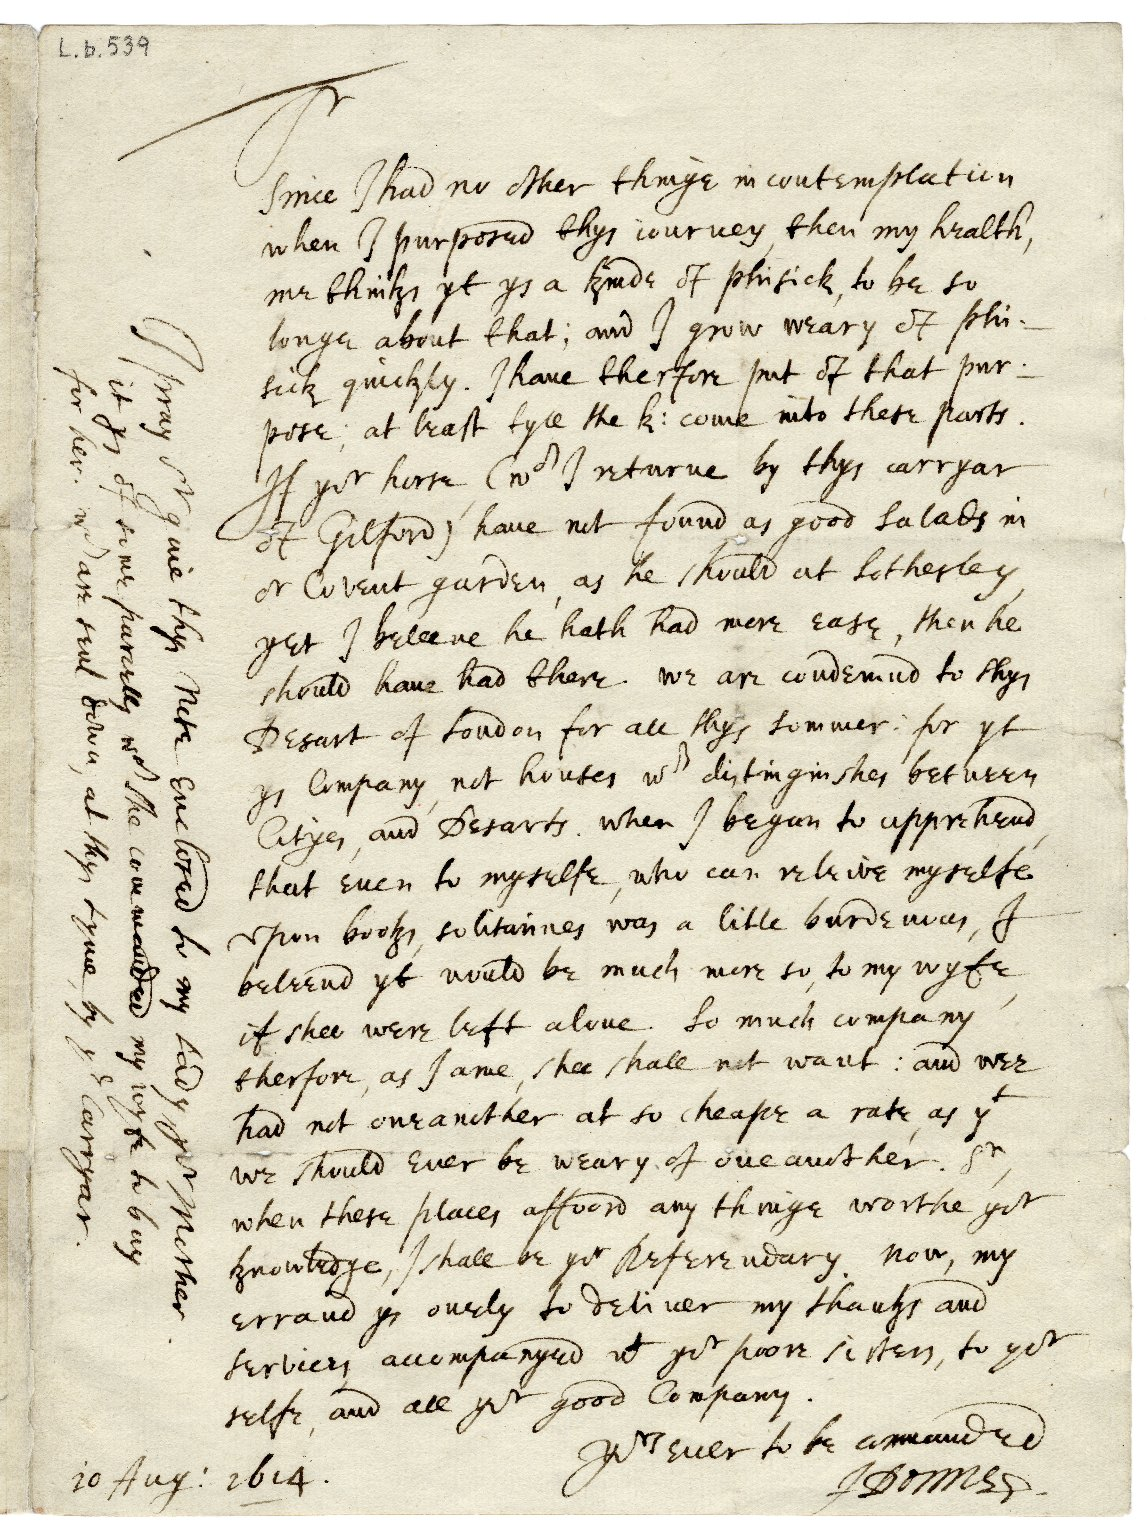 Autograph letter signed from John Donne, London, to Sir Robert More, Loseley [manuscript], 1614 August 10.